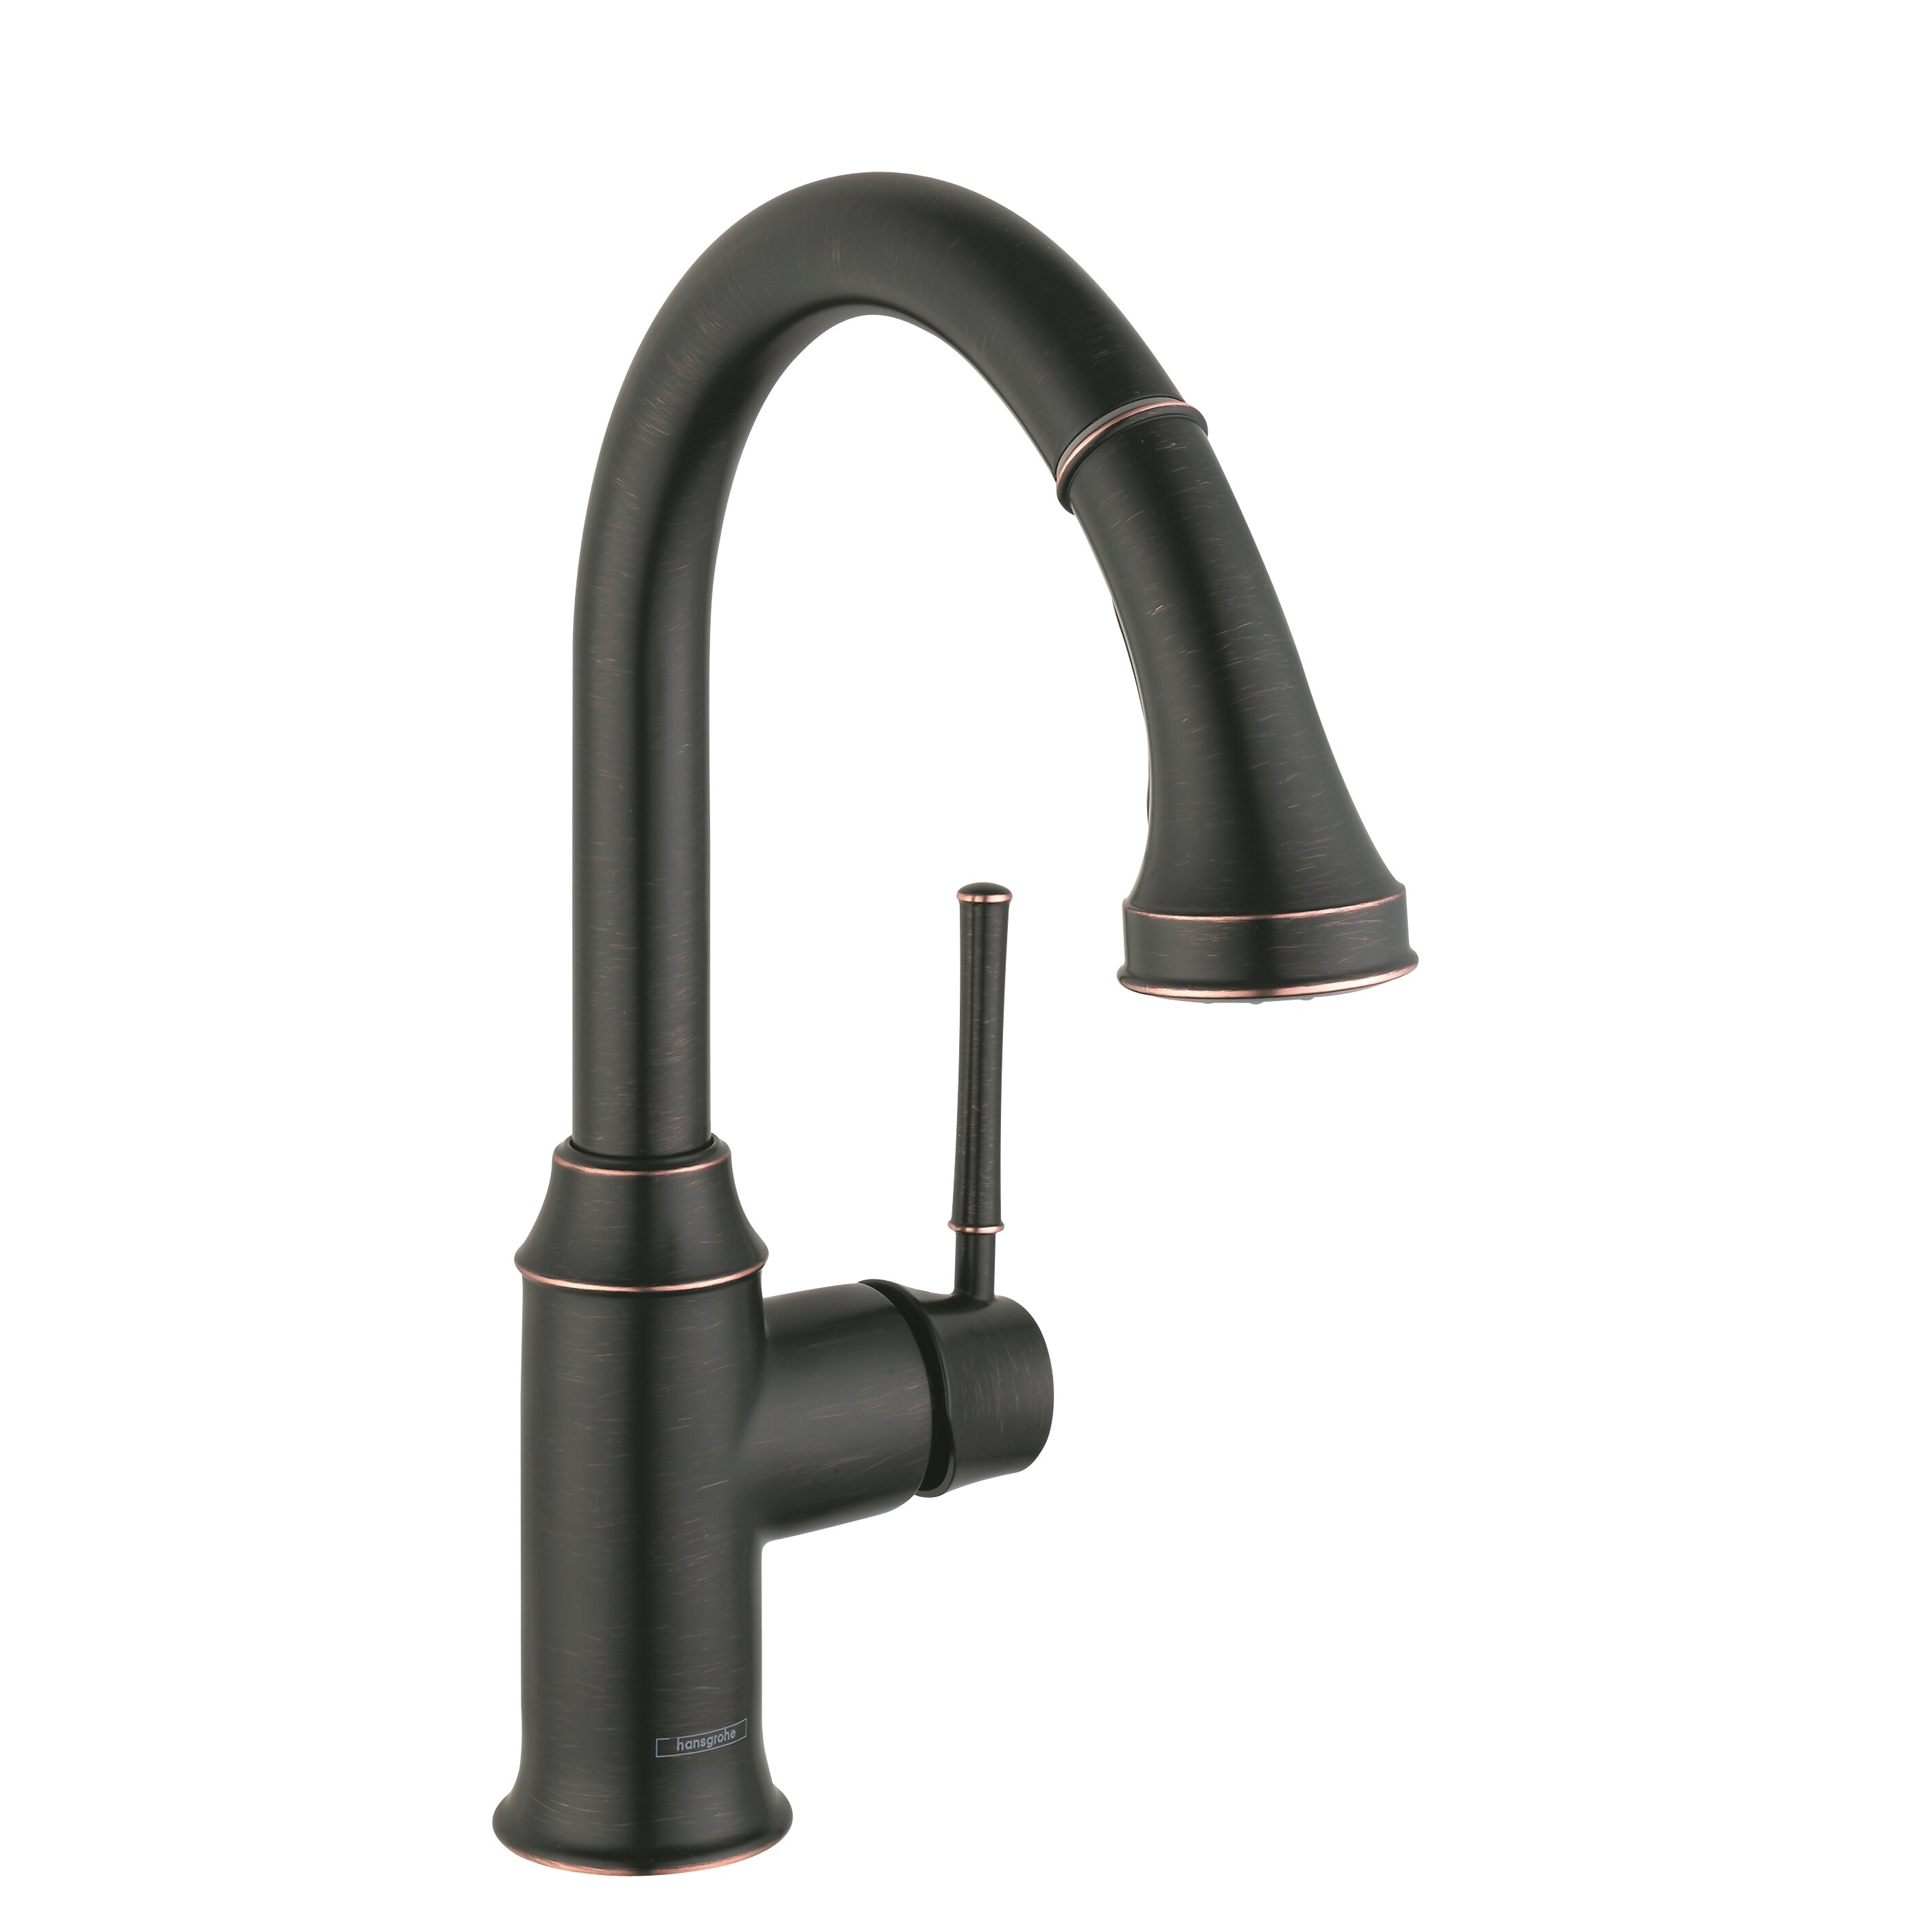 hansgrohe kitchen faucet awesome ideas 4moltqa com hansgrohe kitchen faucets great hansgrohe faucets at